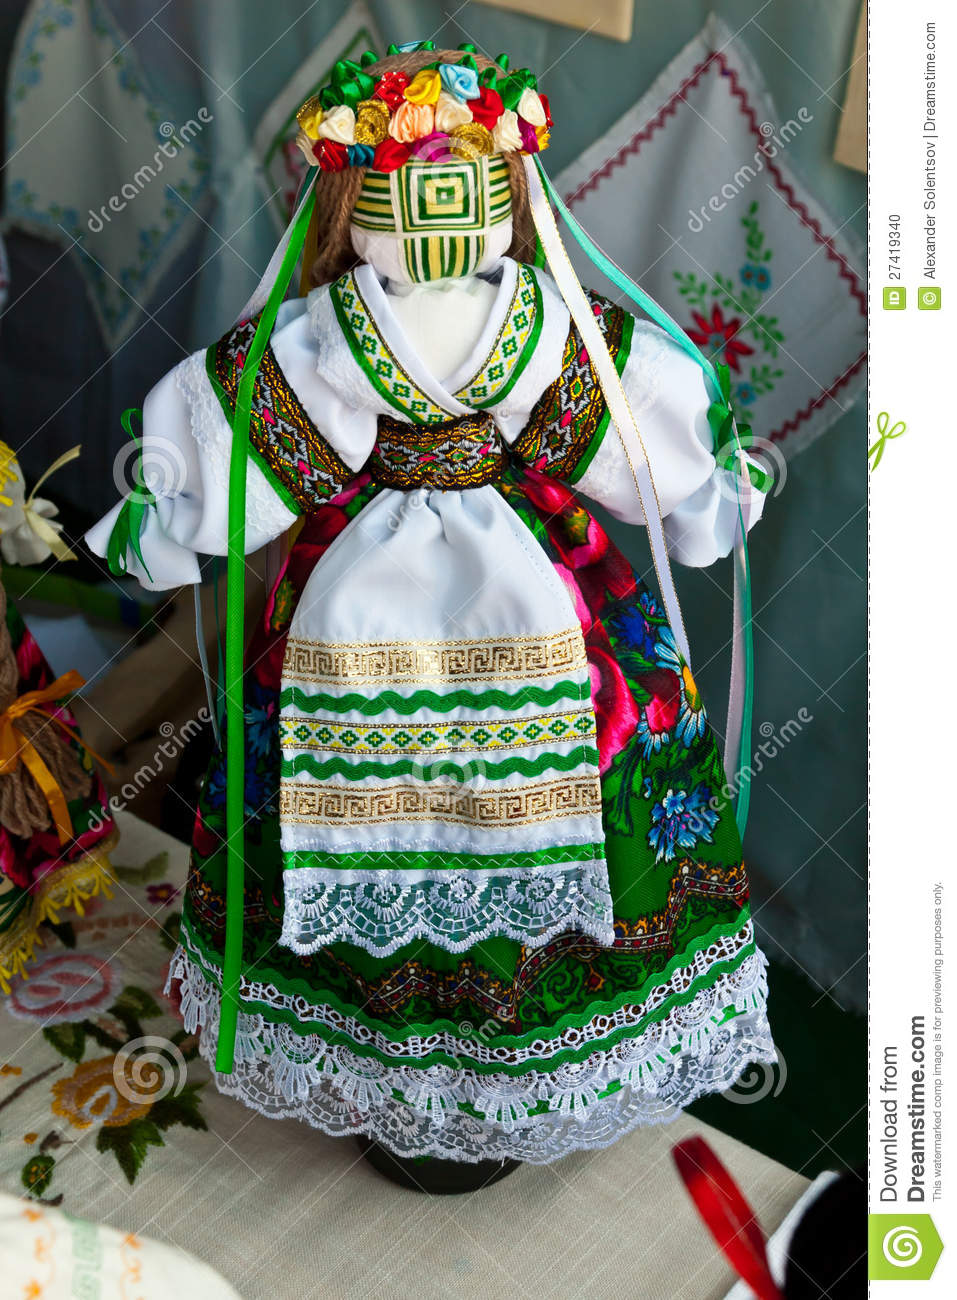 Ukrainian national doll